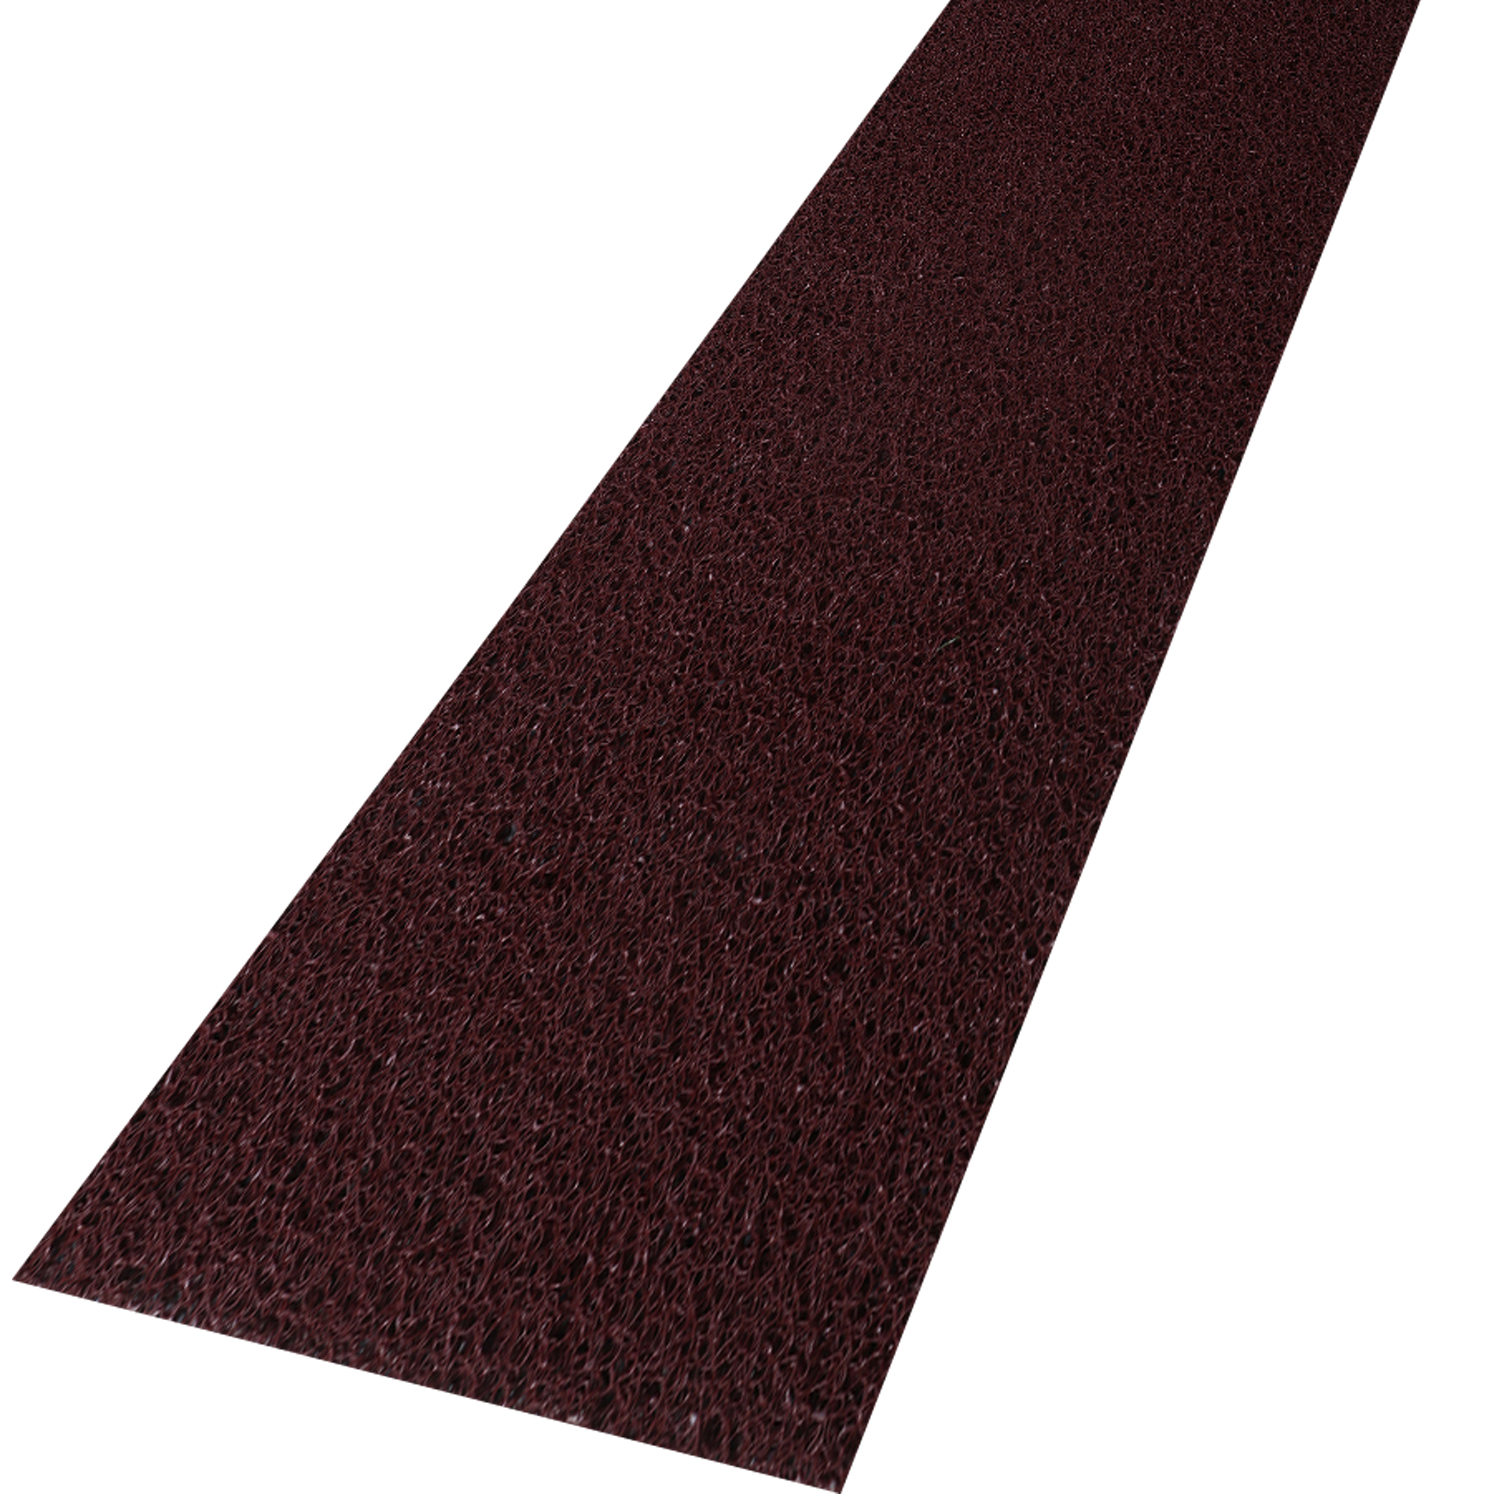 Kuber Industries Rubber 1 Piece Bed Side Runner 2x8 Feet (Maroon)